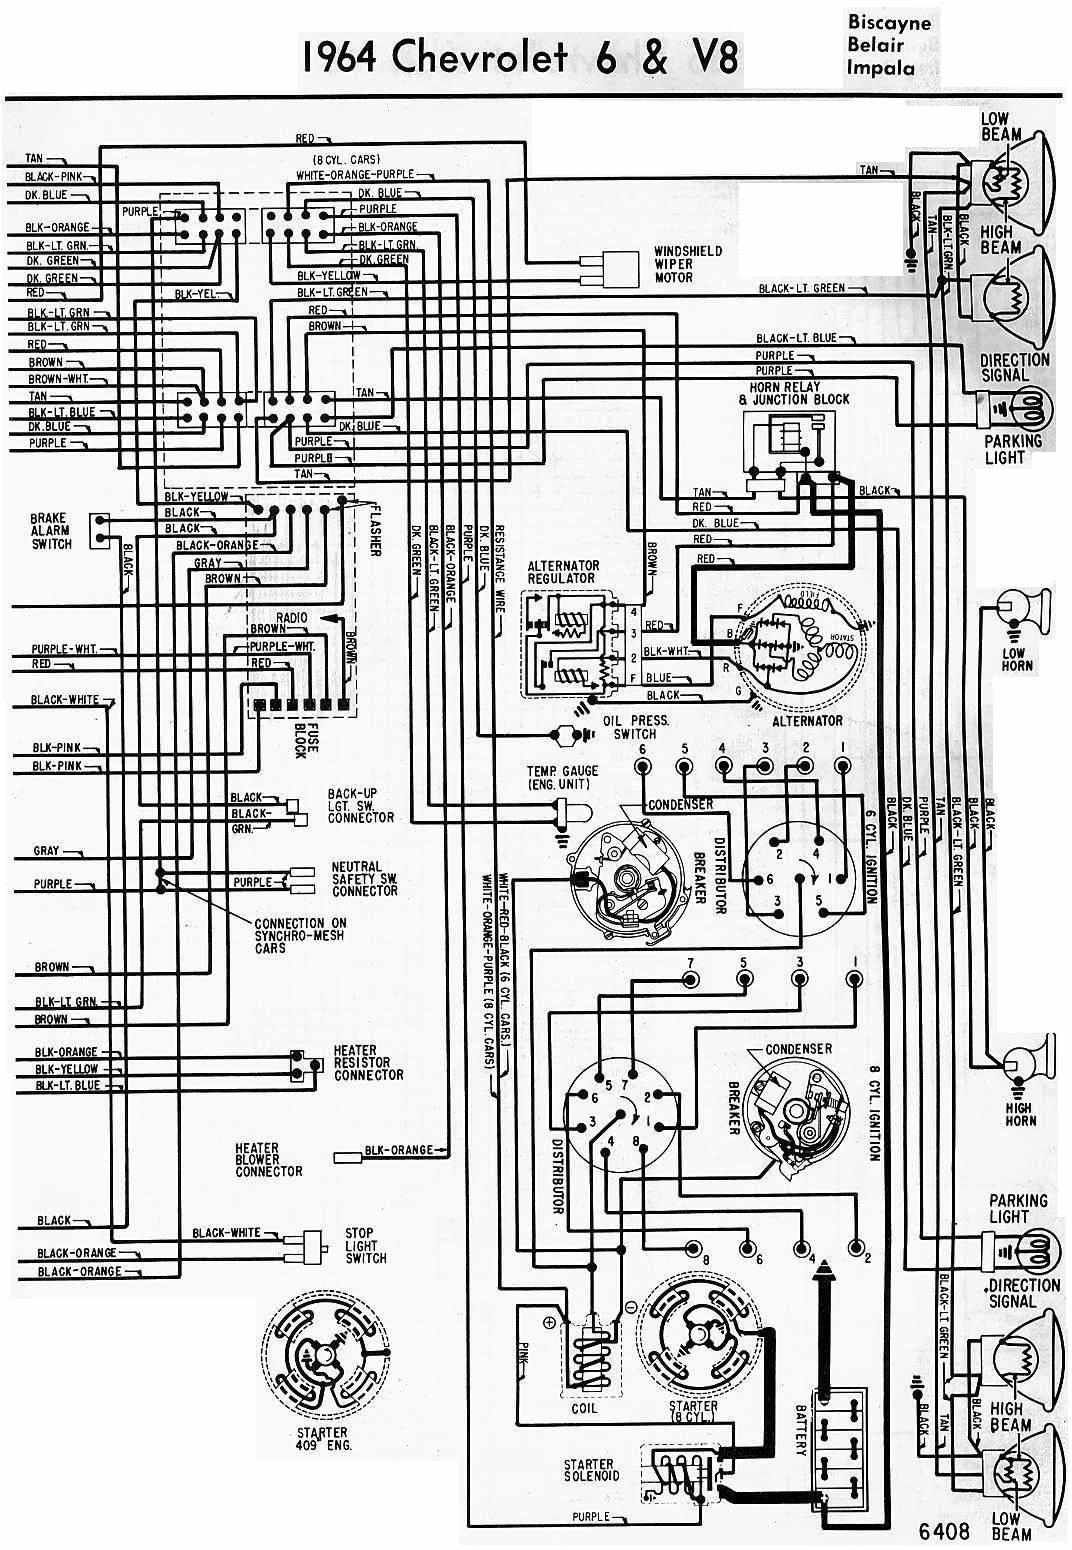 Chevy Impala Wiring Diagram -S13 240sx Fuse Box | Begeboy Wiring Diagram  SourceBegeboy Wiring Diagram Source